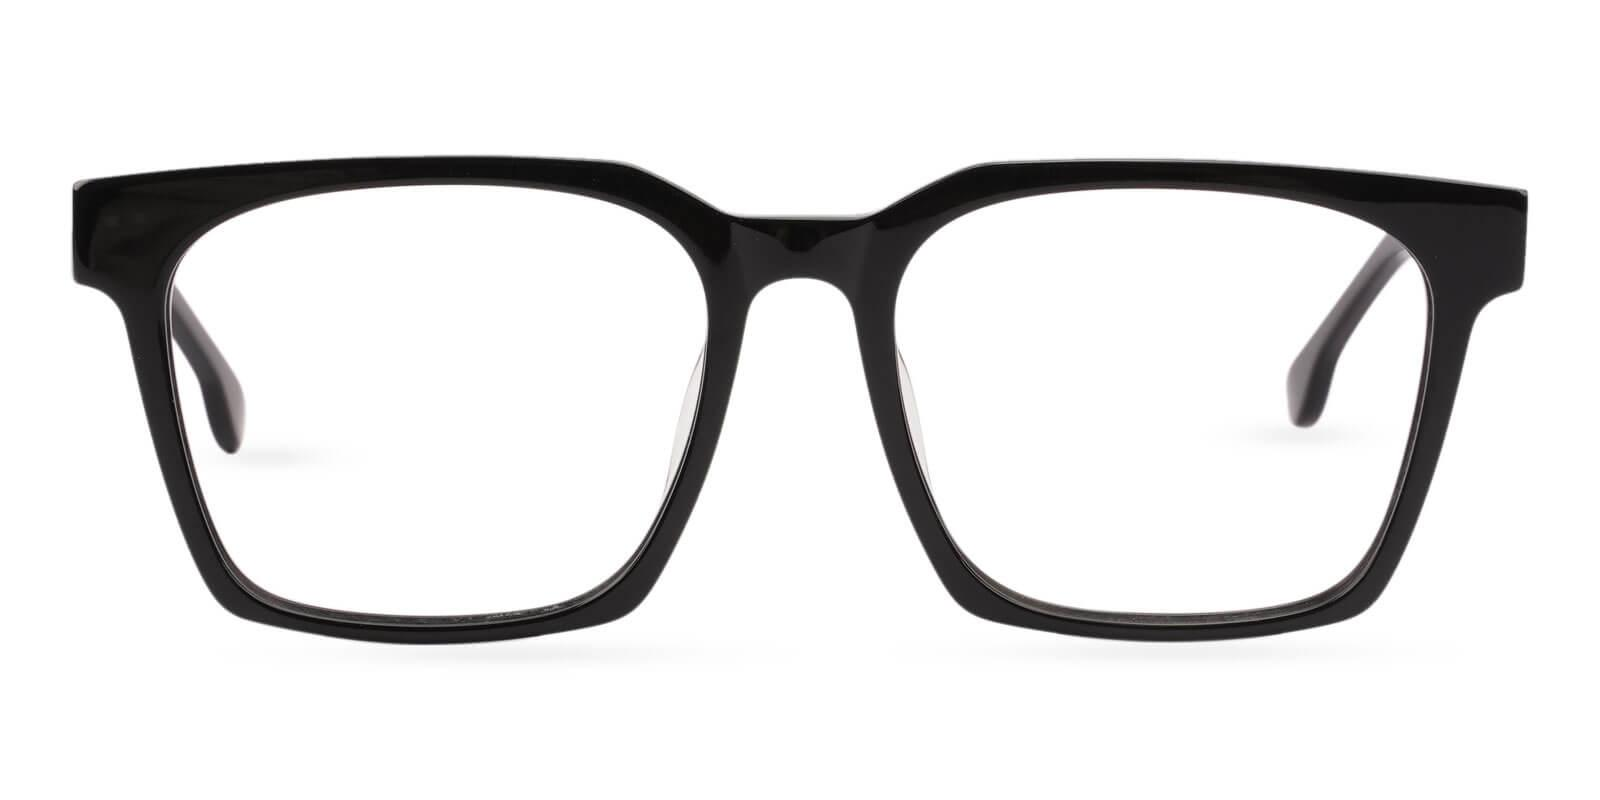 Gilbert Black Acetate Eyeglasses , UniversalBridgeFit Frames from ABBE Glasses